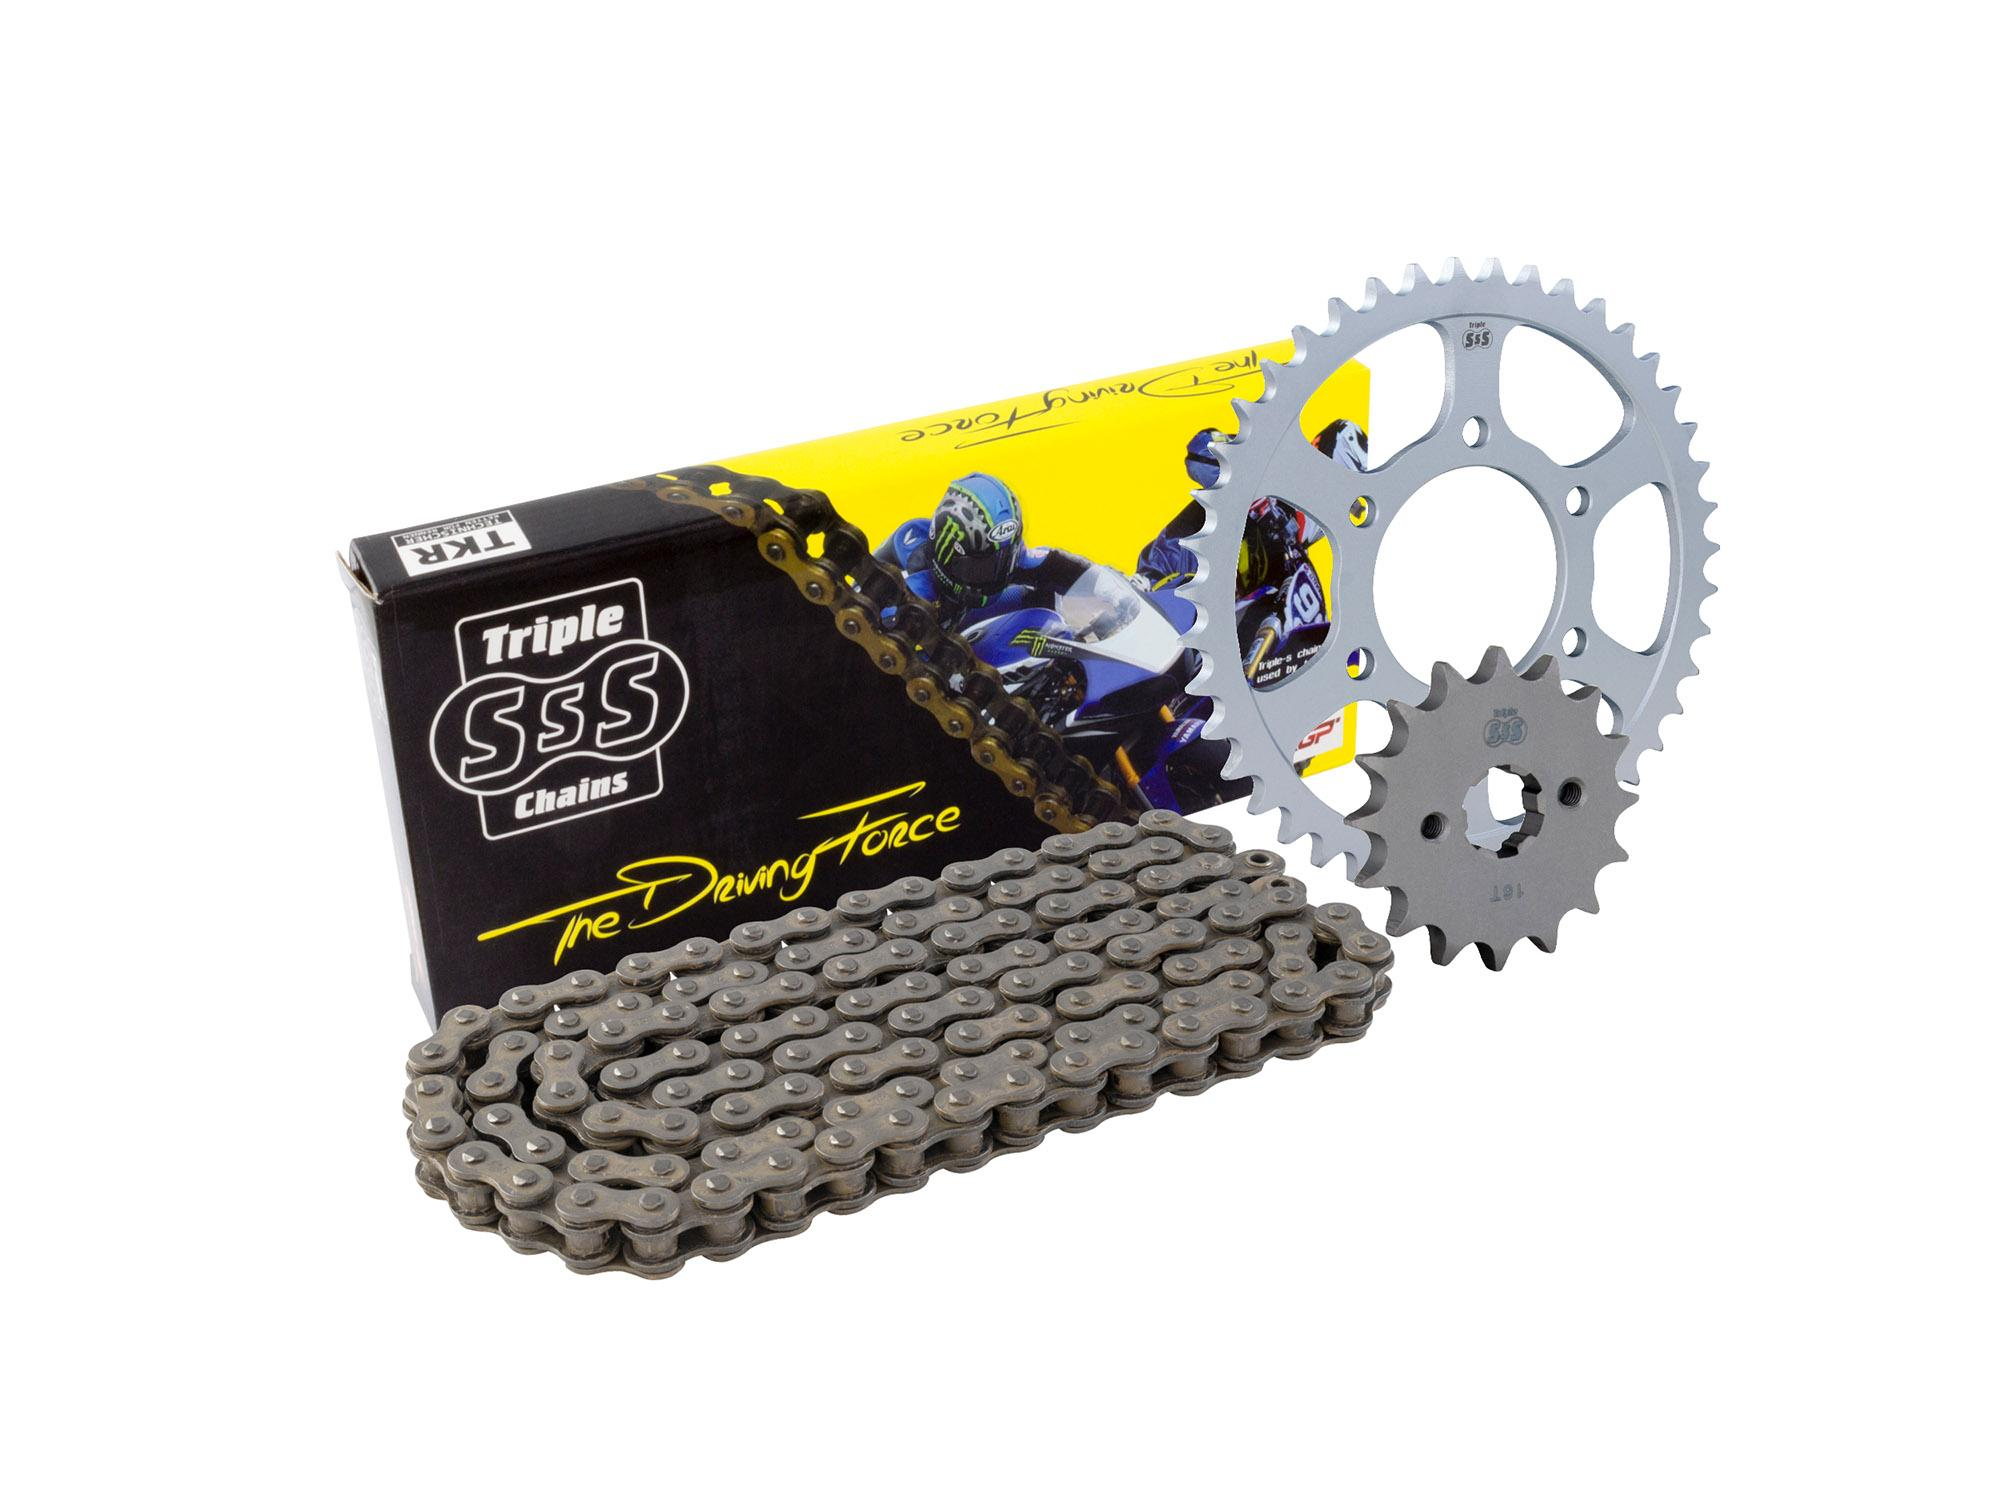 Ducati 900 Monster 99 Chain & Sprocket Kit: 15T Front, 38T Rear, HD O-Ring Black Chain 520H 98Link